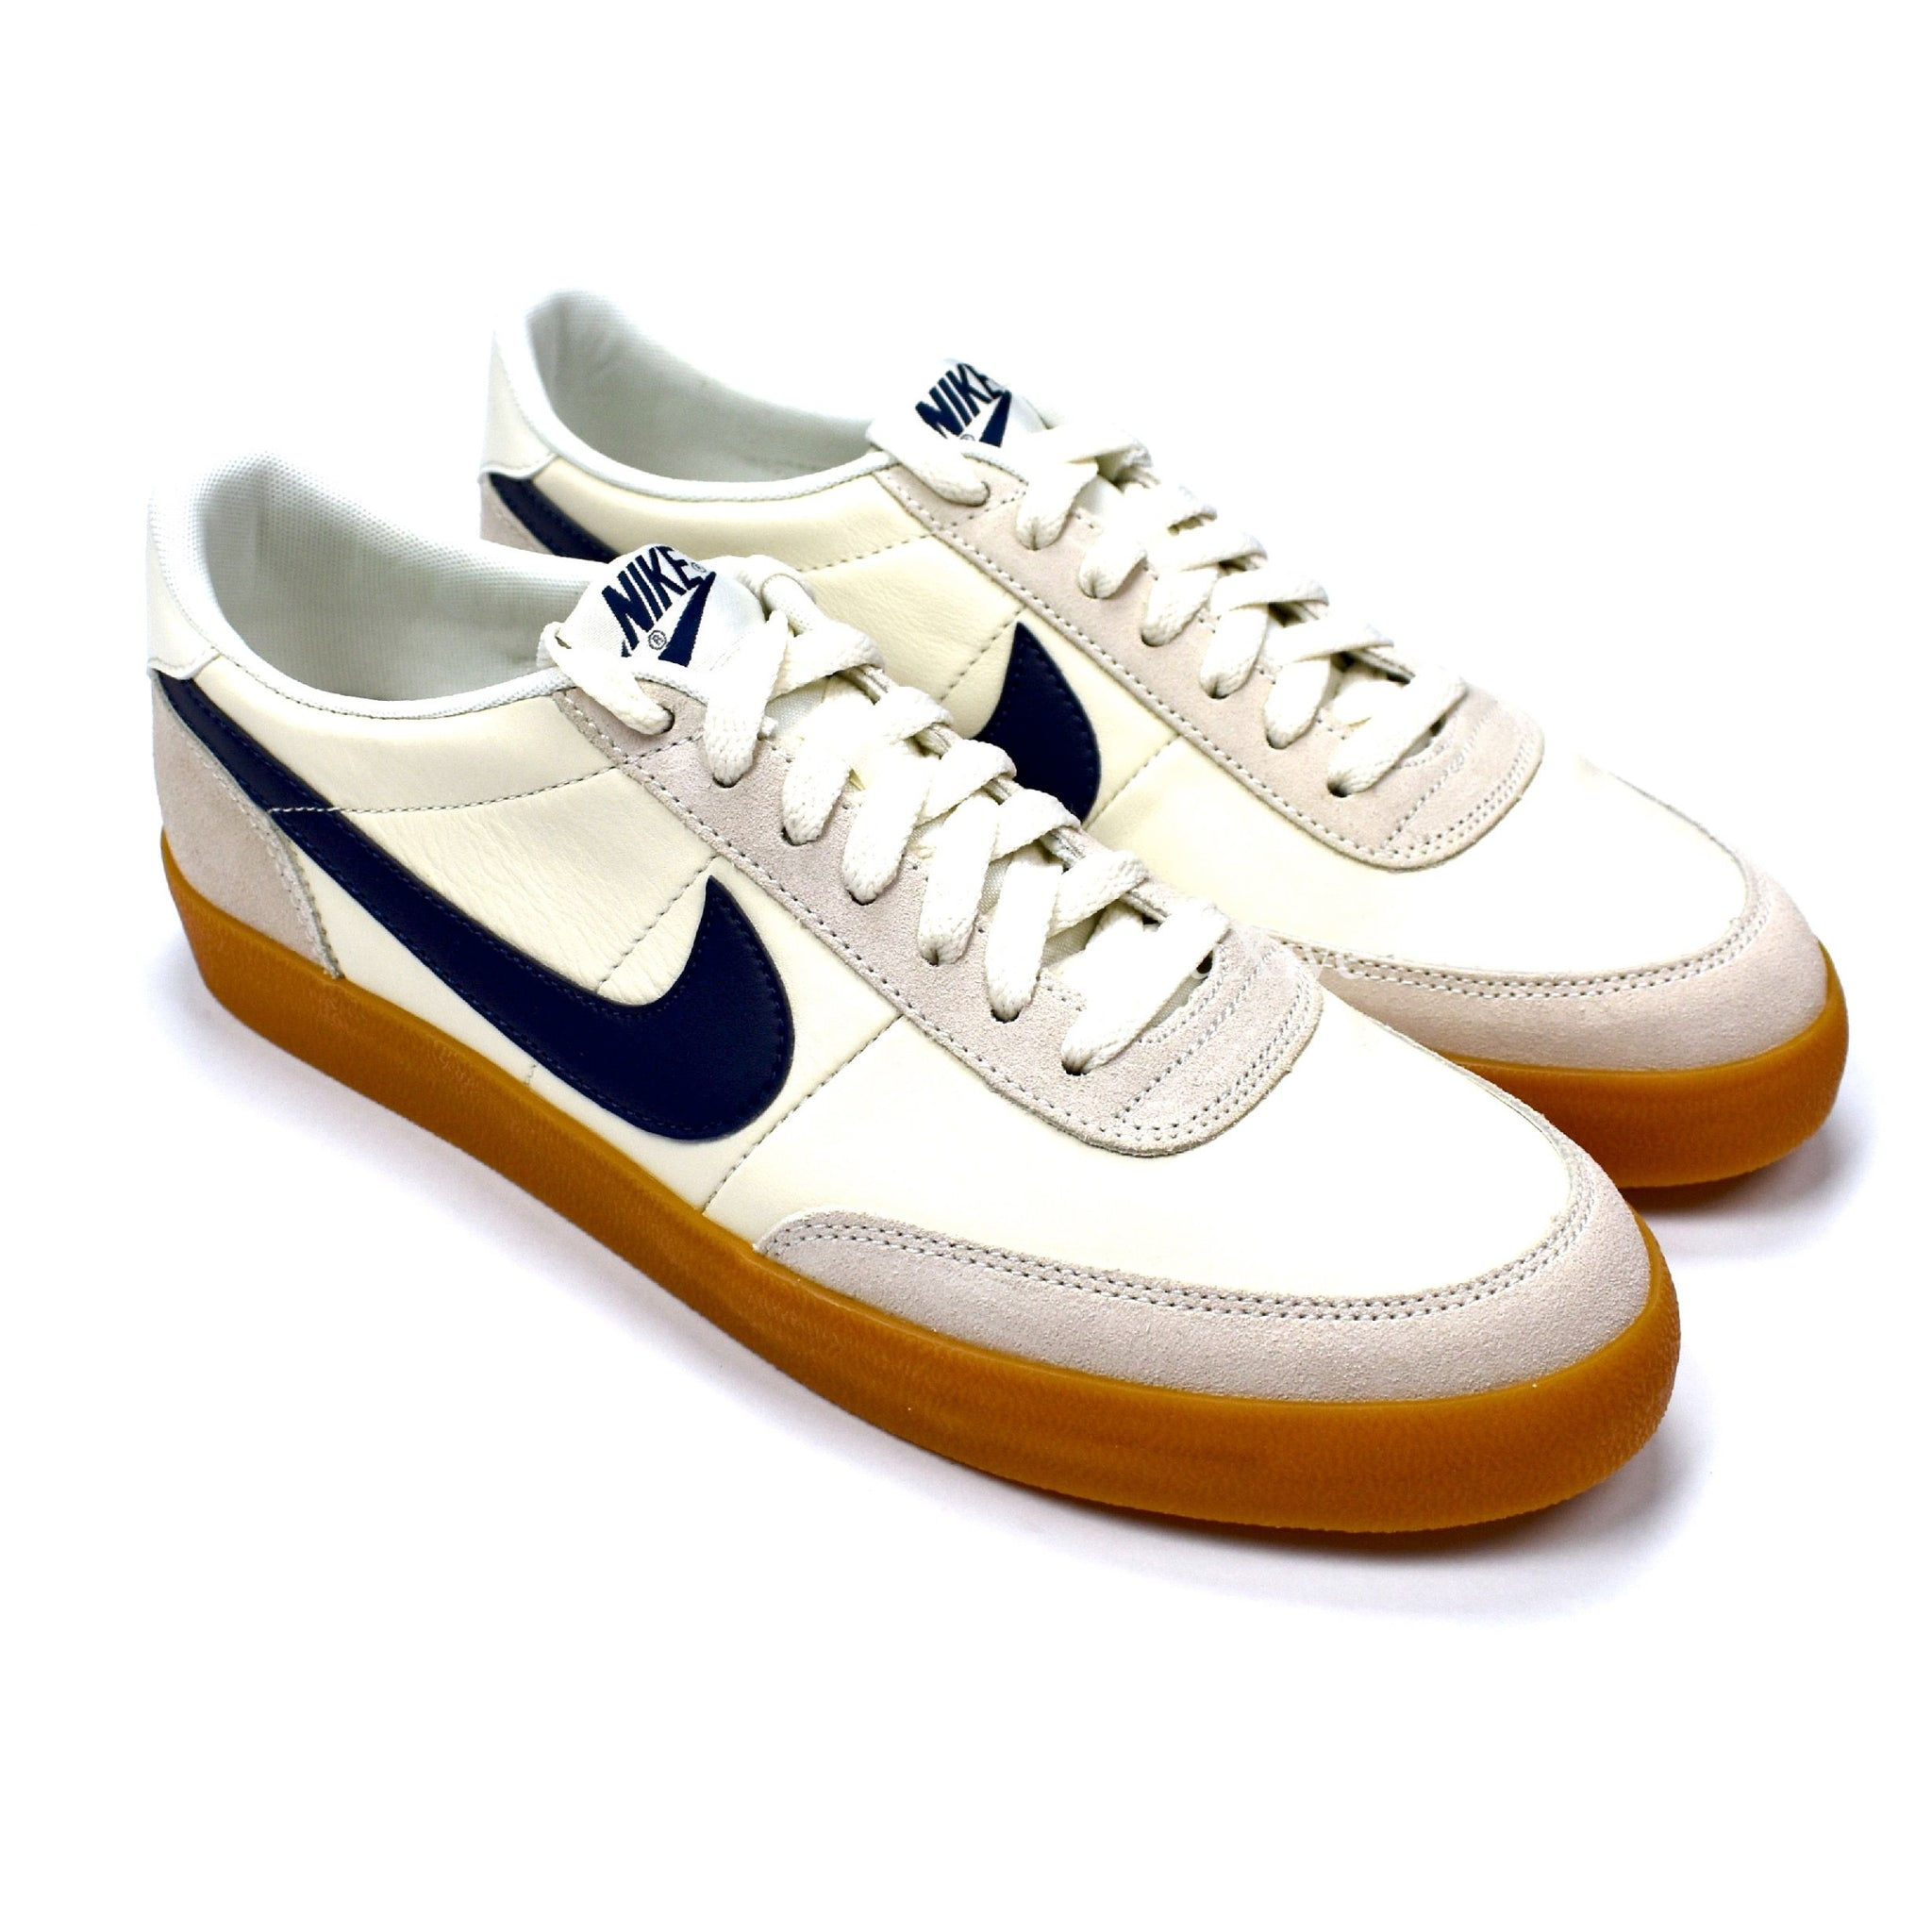 Nike x J.Crew - Men s Killshot 2 Leather Classic Tennis Sneakers ... c66fcd927